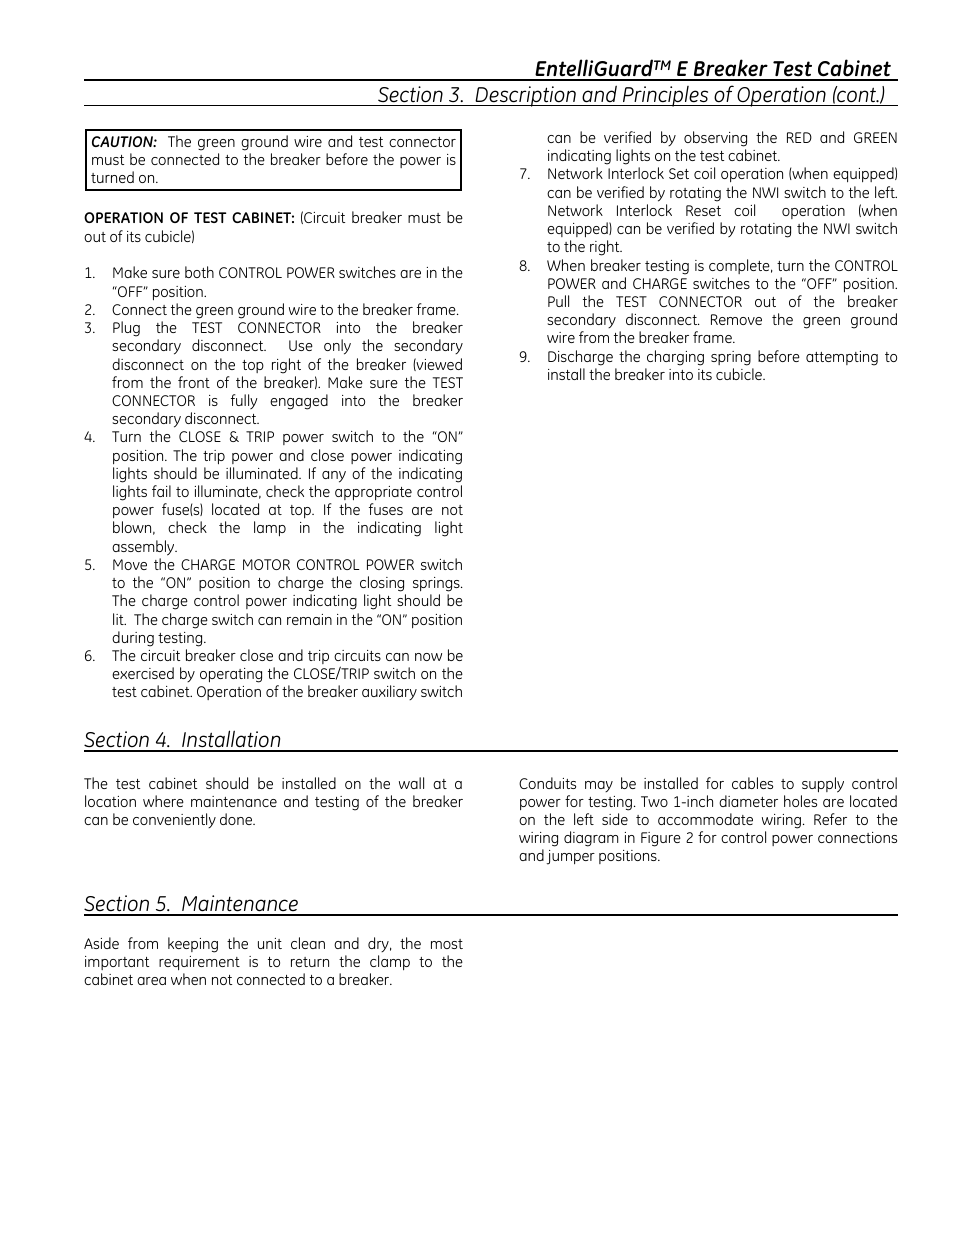 Entelliguard Ge Industrial Solutions E Test Cabinet Cubicle Wiring Diagram User Manual Page 7 12